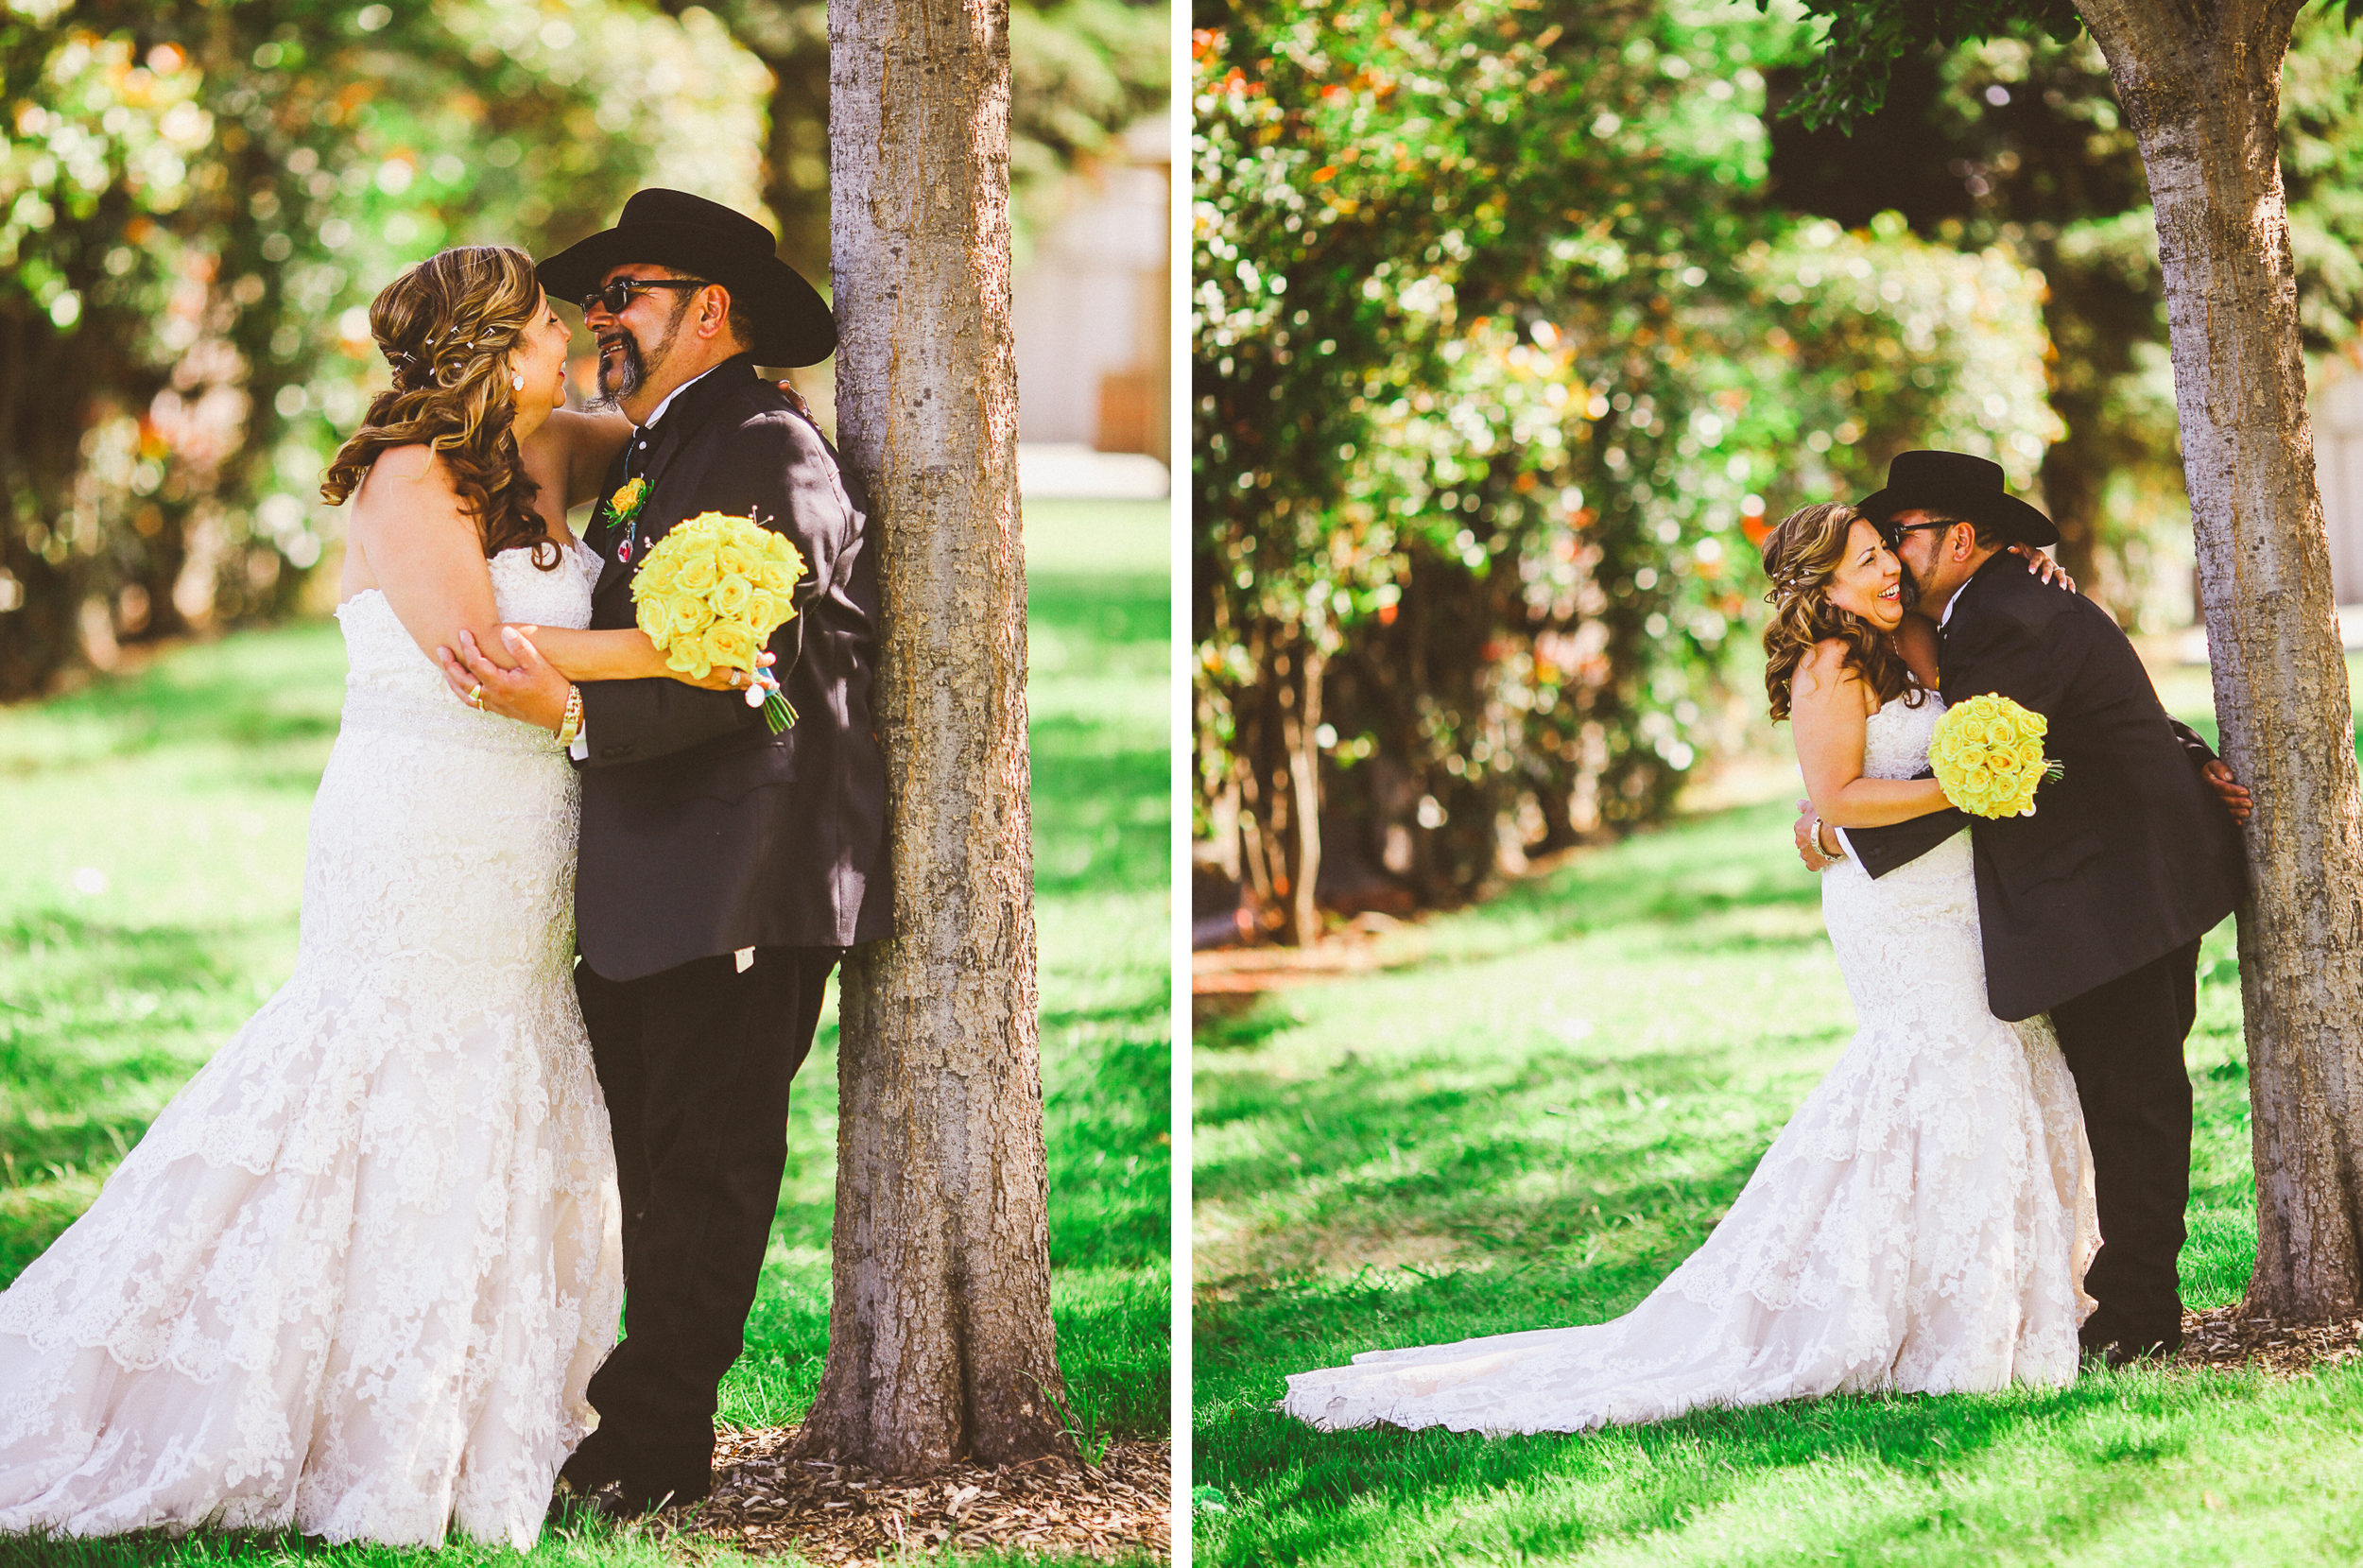 san diego wedding   photographer   collage of groom with cowboy hat leaning over to kiss bride on   cheek